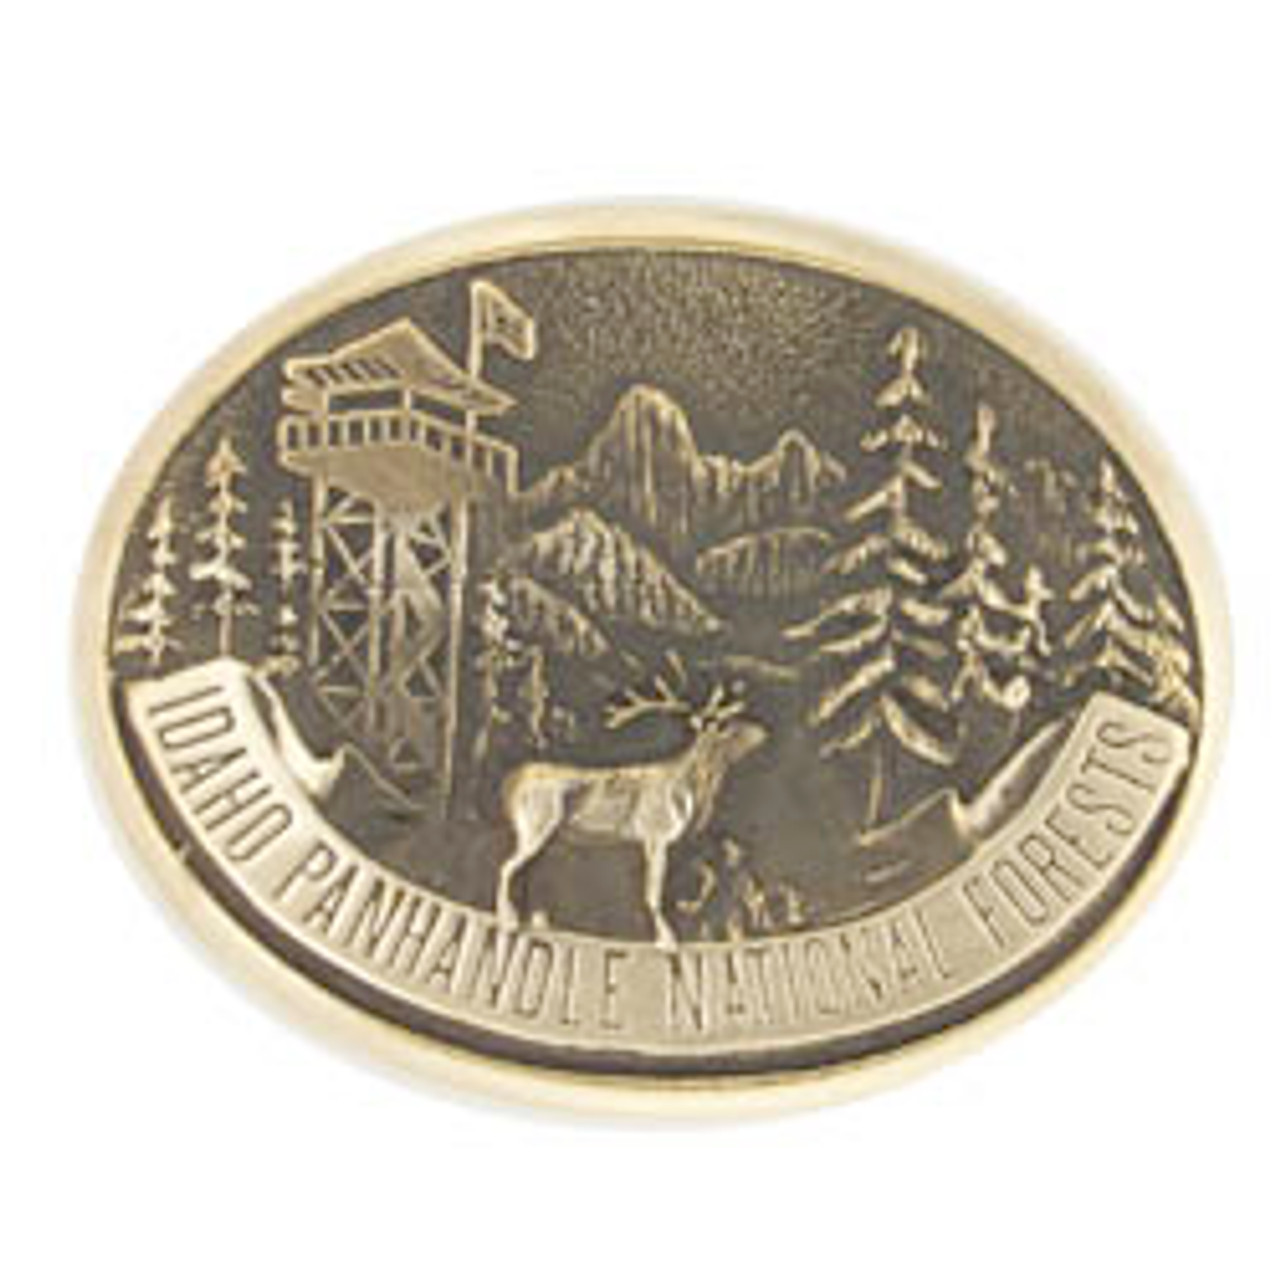 Idaho Panhandle National Forest Buckle